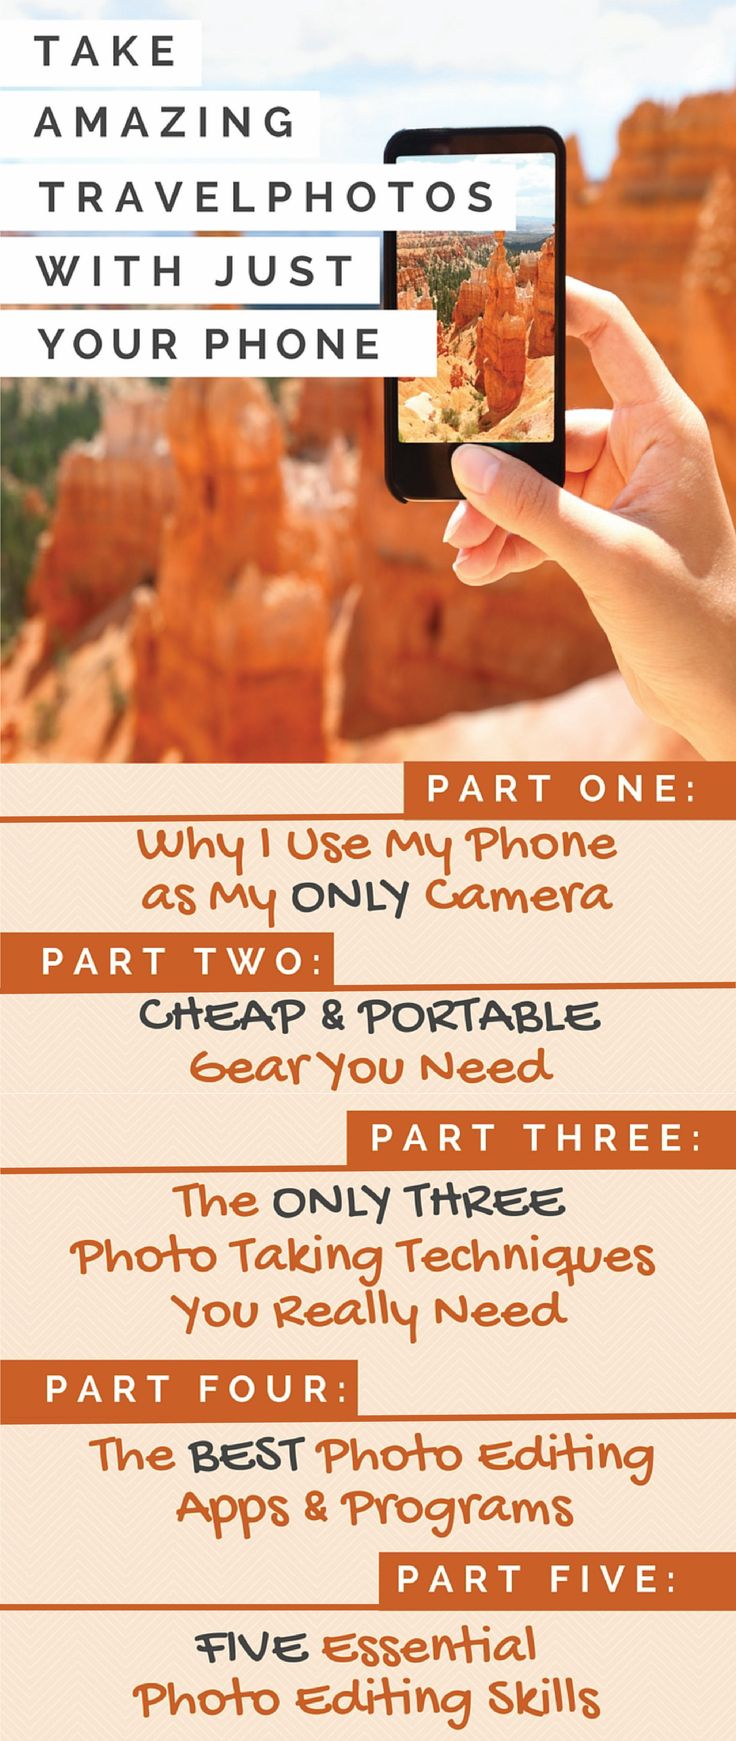 I have used an iPhone as my sole camera for all of my photography during my travels to 20+ countries. I literally have taken THOUSANDS of photos with my phone on my travels around the world. I have created this 5-part guide to taking amazing travel photos with your phone, sharing strategies developed from my extensive personal experience and plenty of trial and error!